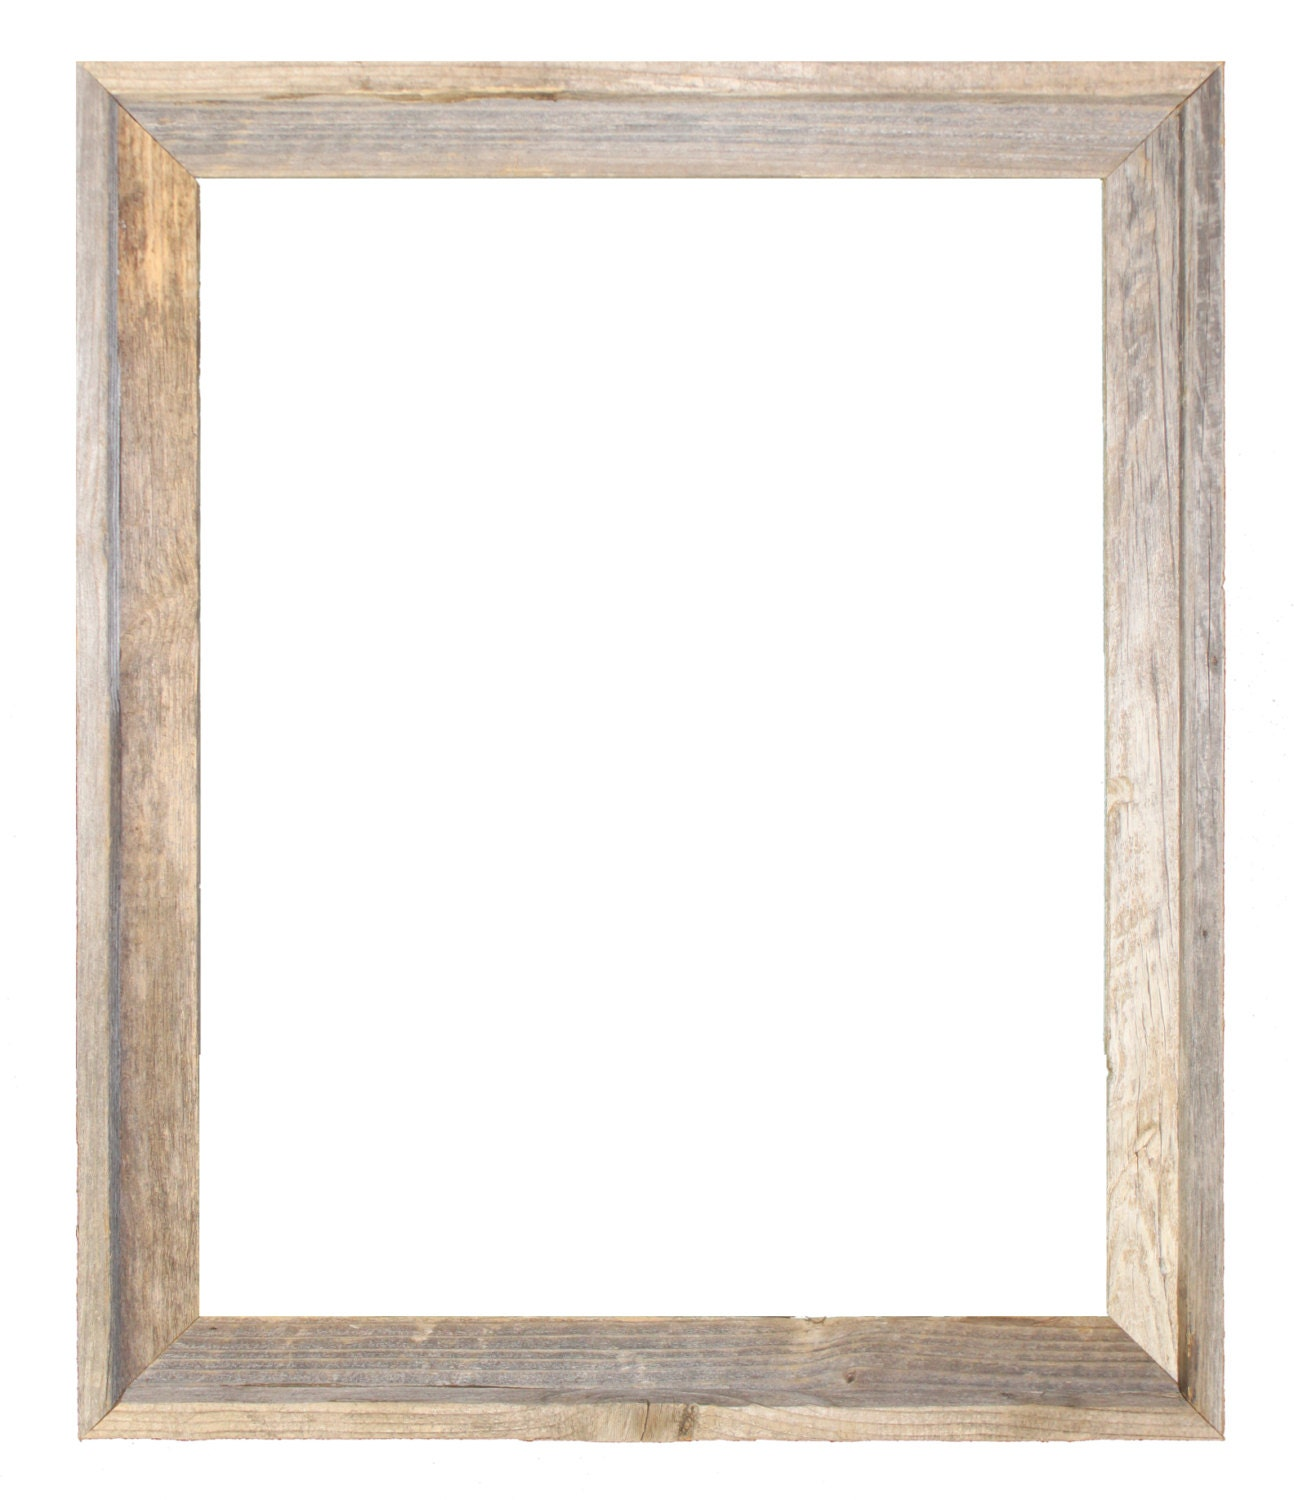 18x24 rustic barn wood open frame for 18x24 window